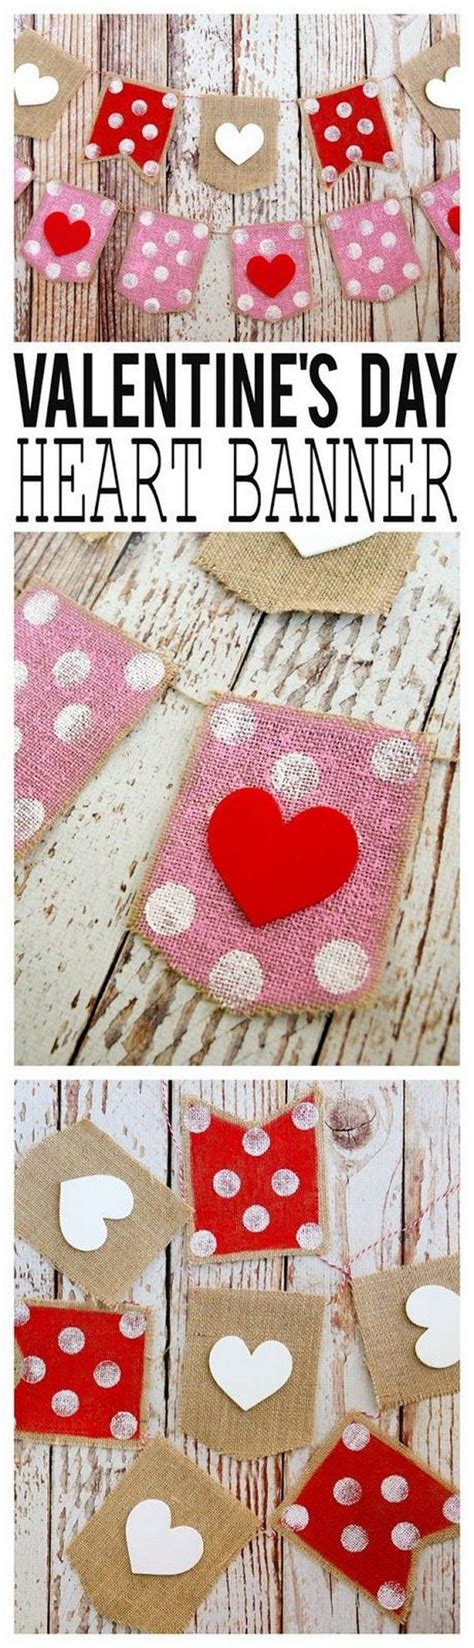 cool ideas for valentines day cool ideas for valentines day